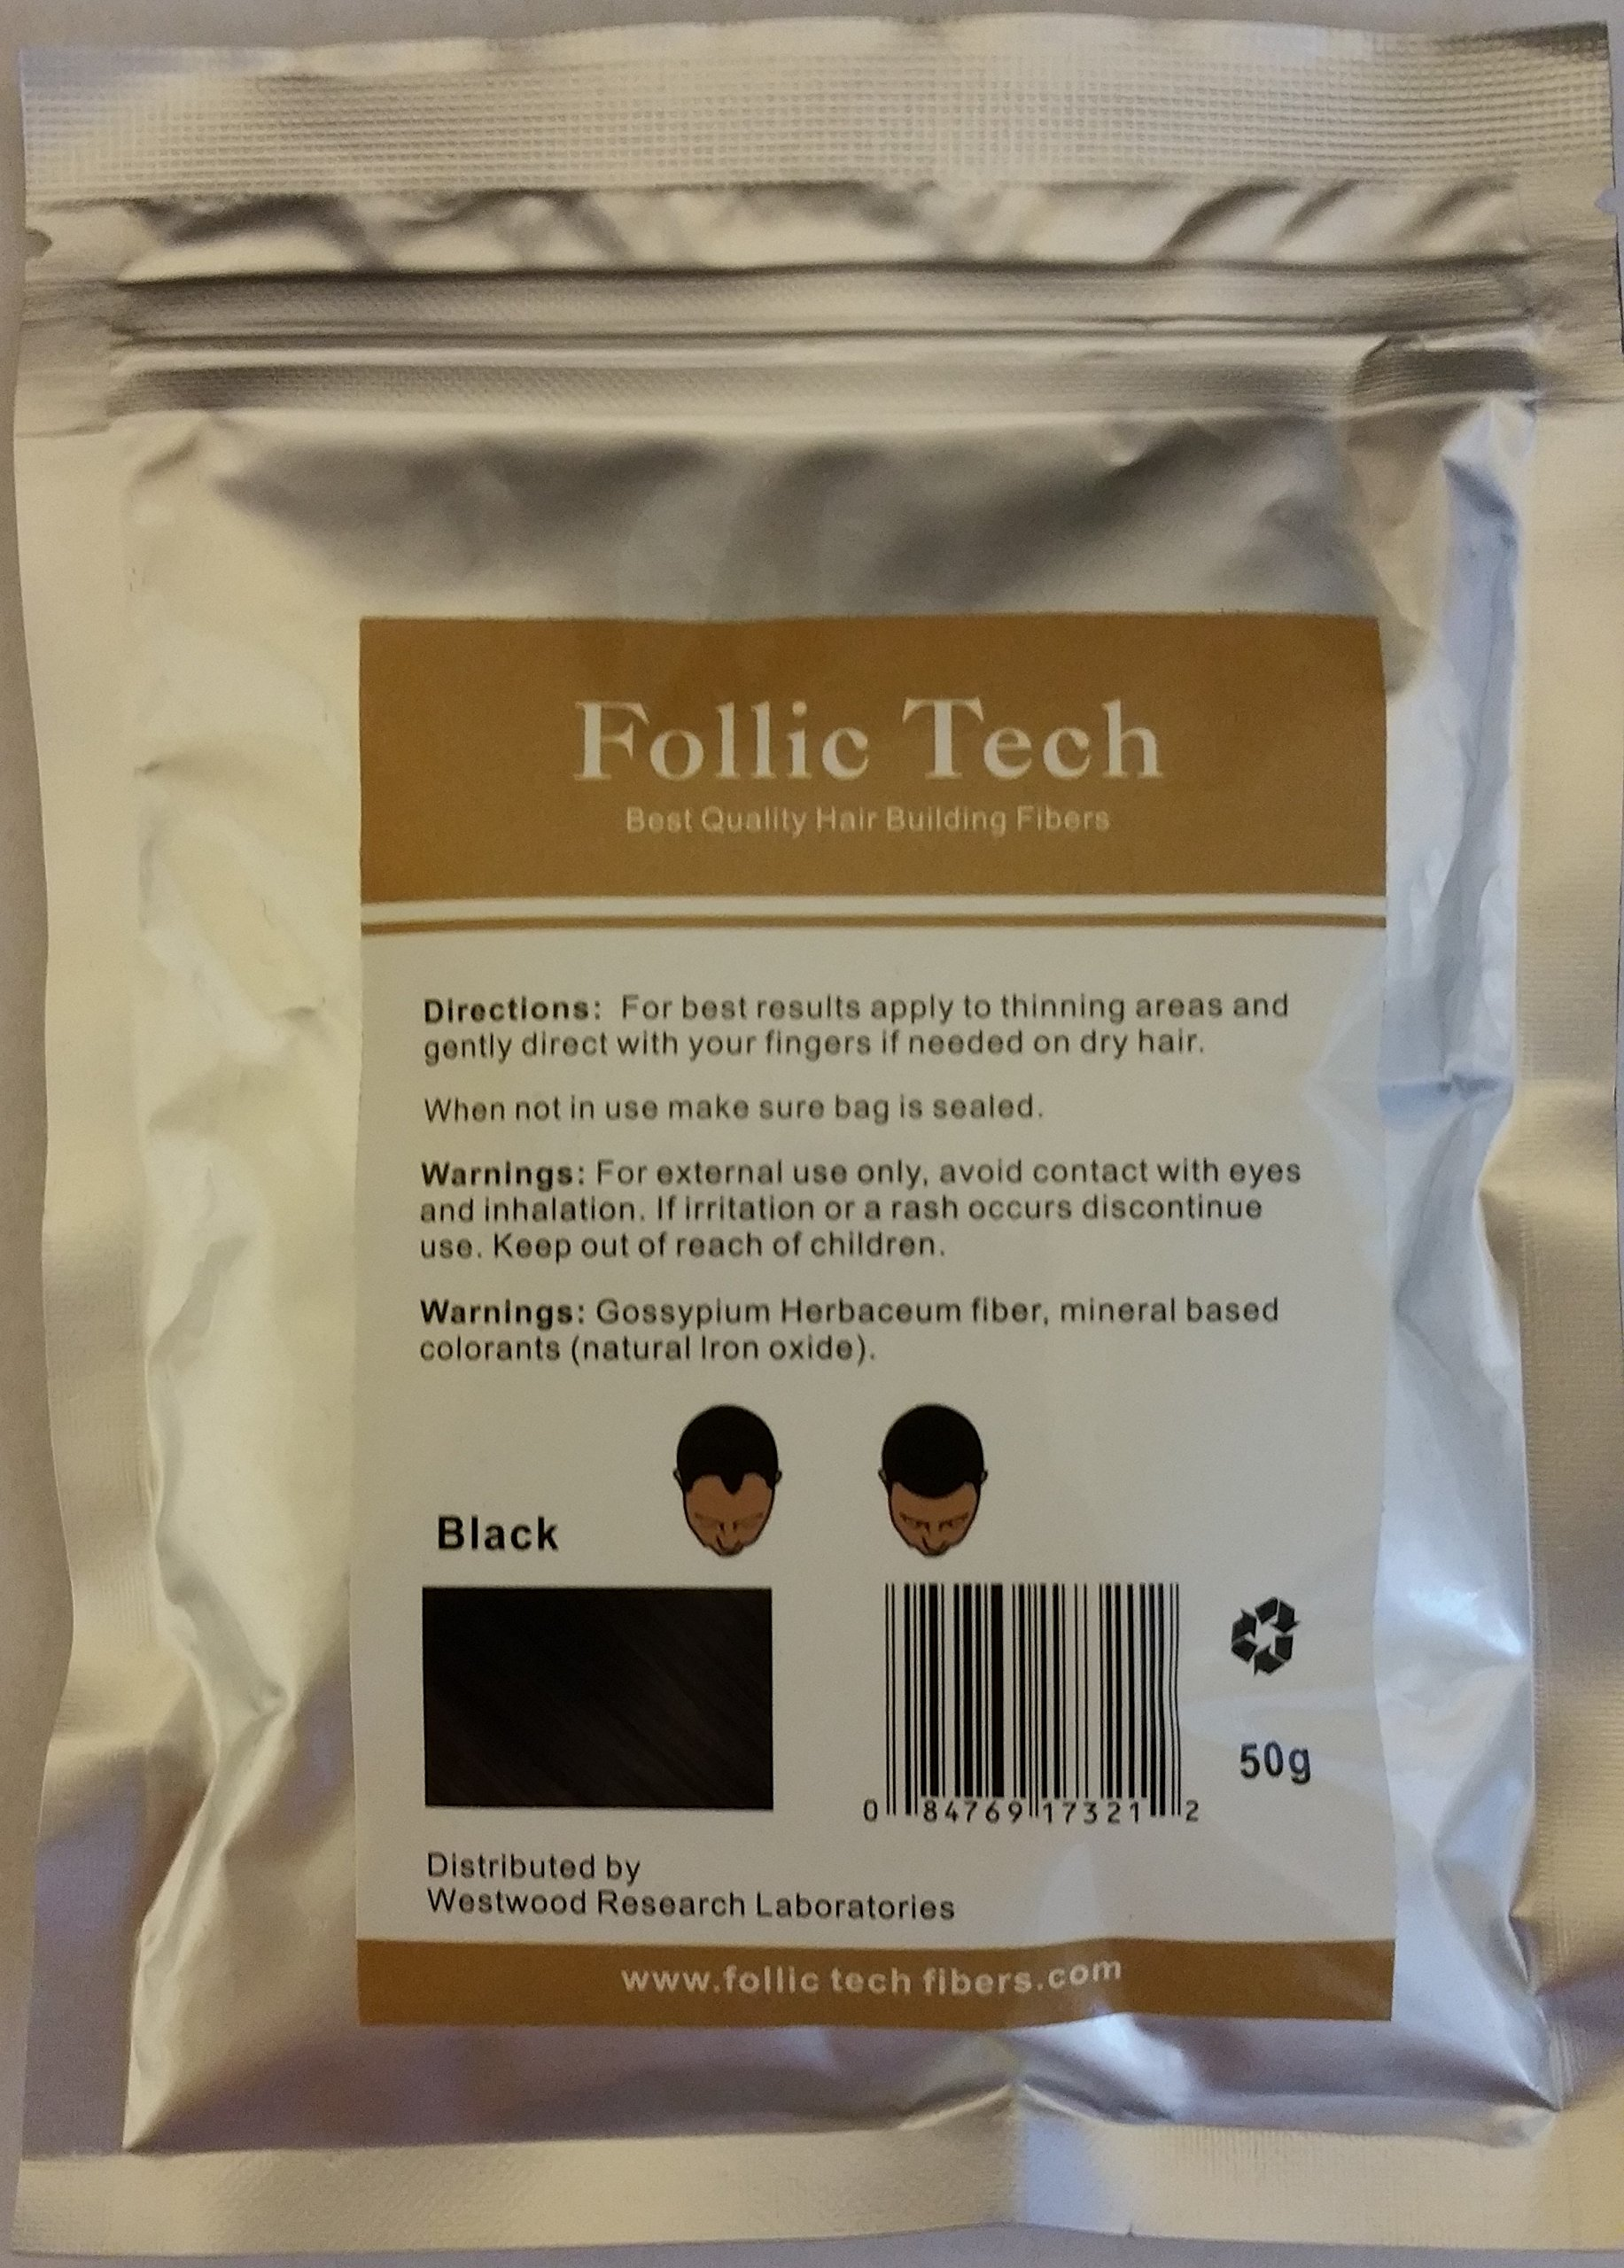 Hair Building Fibers Black 500 Grams. Highest Grade Refill That You Can Use for Your Bottles from Competitors Like Toppik, Xfusion. by Follic Tech (Image #1)